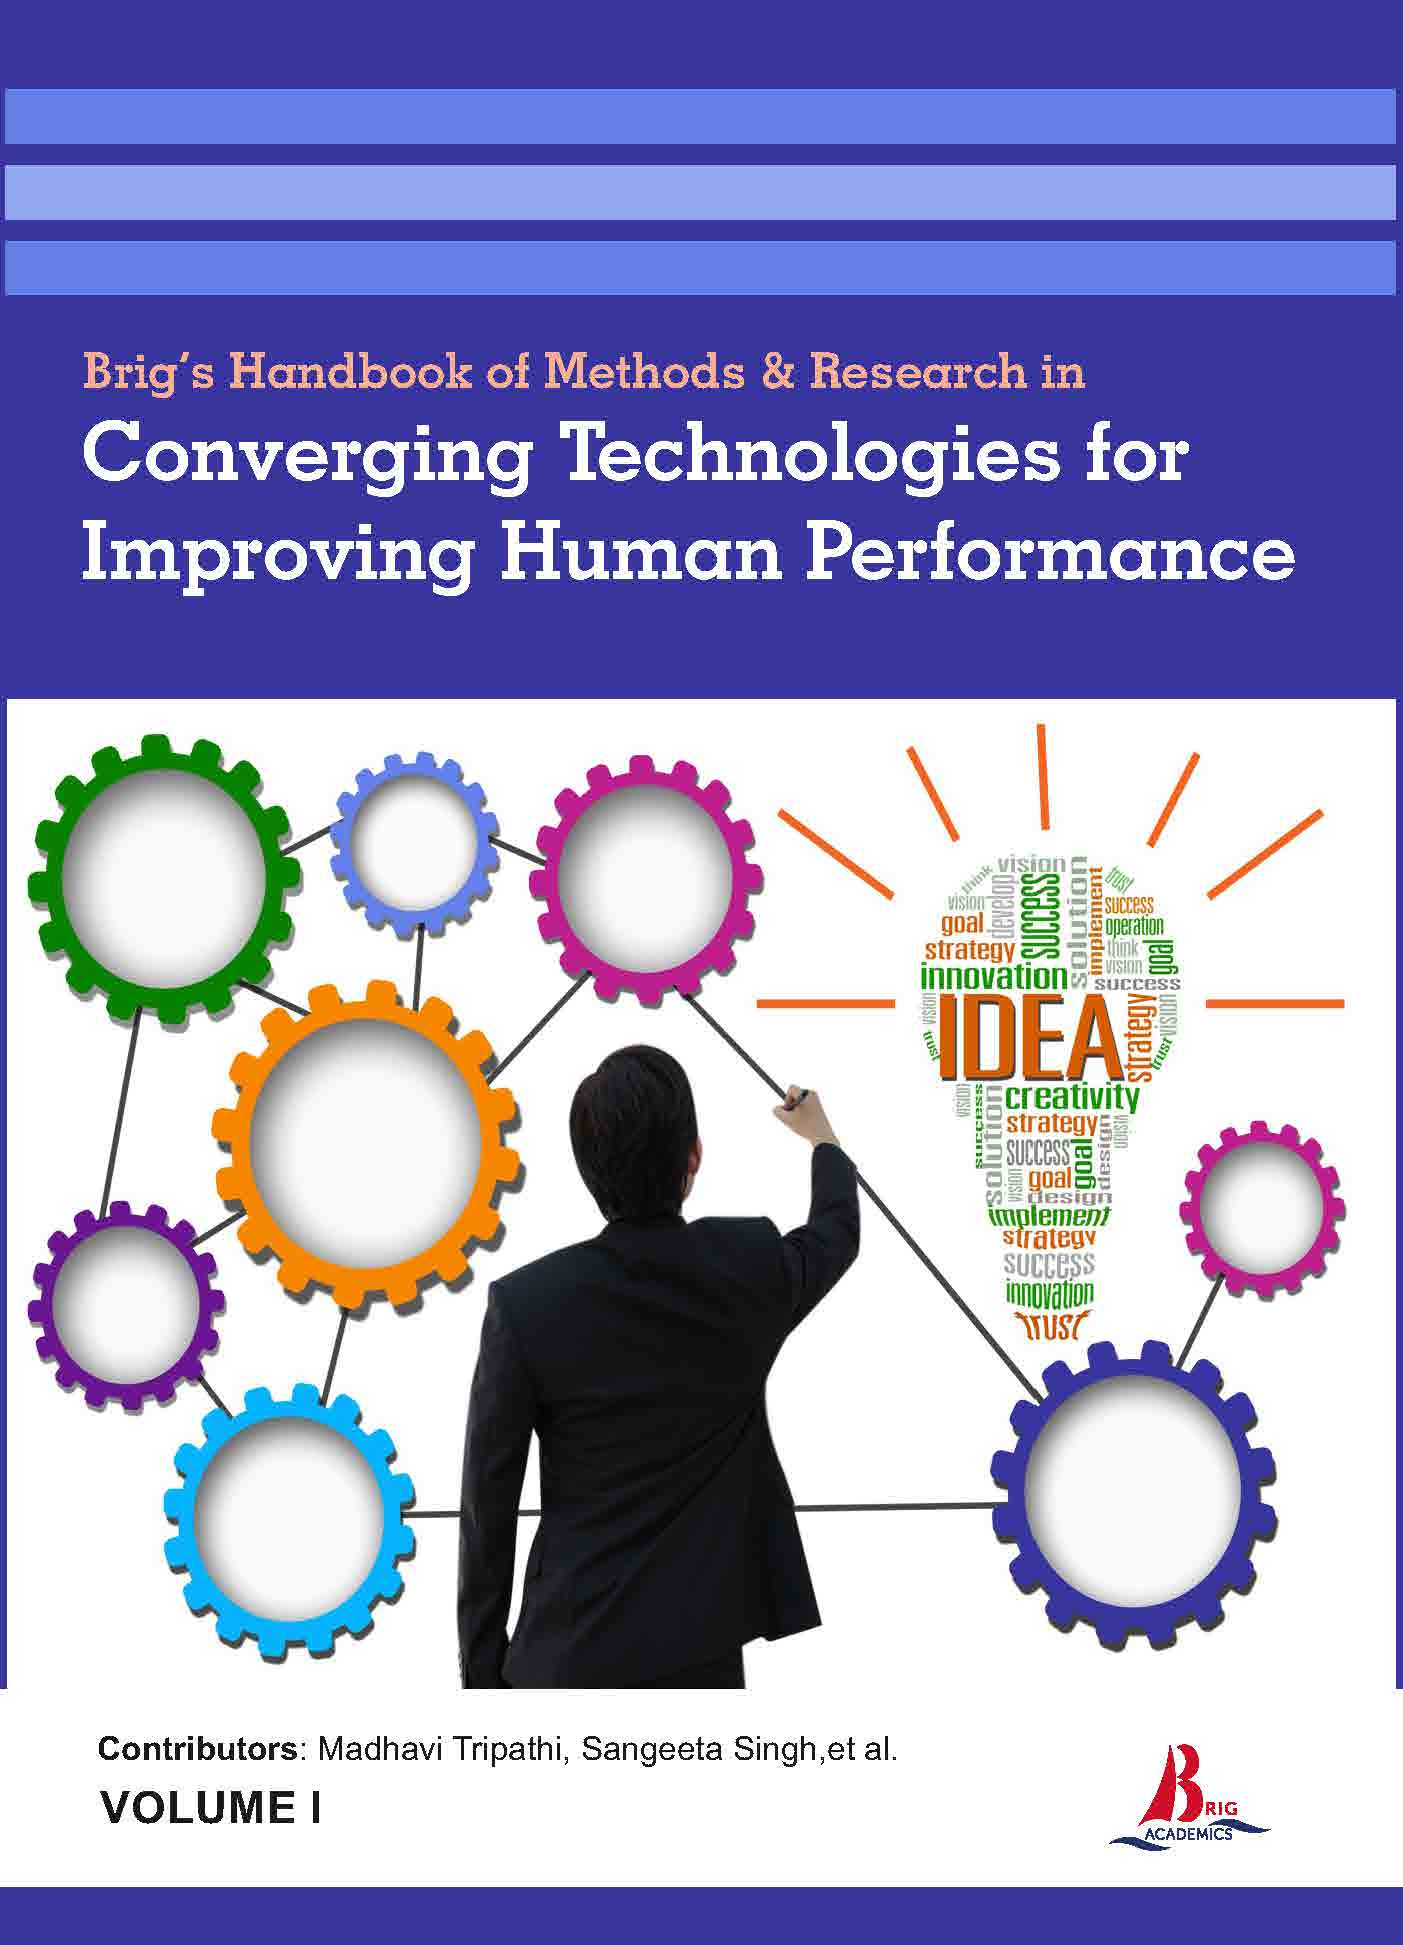 Brig's Handbook of Methods & Research in Converging Technologies for Improving Human Performance